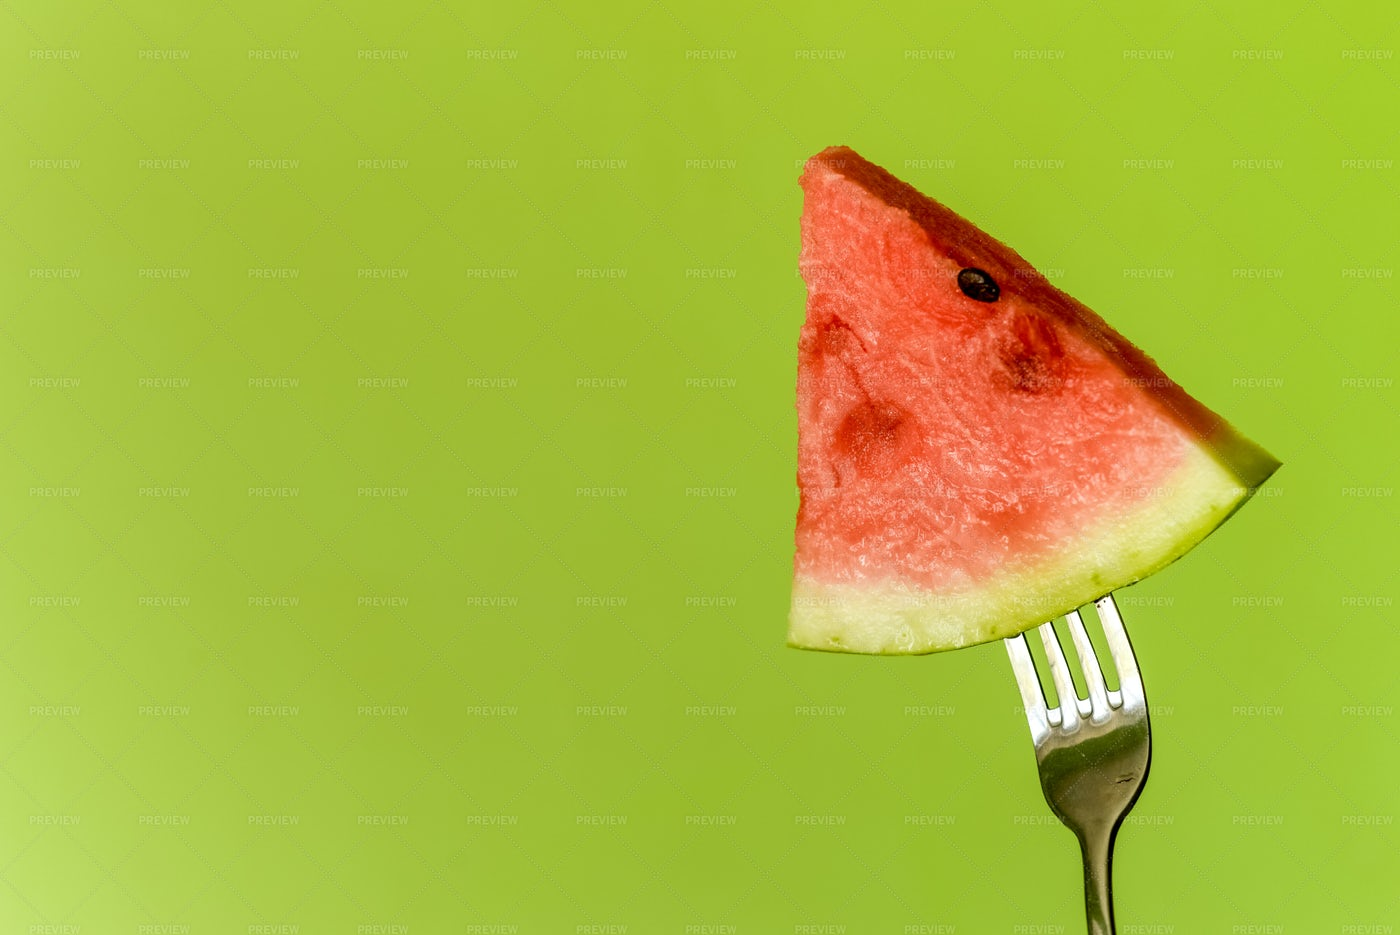 Watermelon On Fork Background: Stock Photos